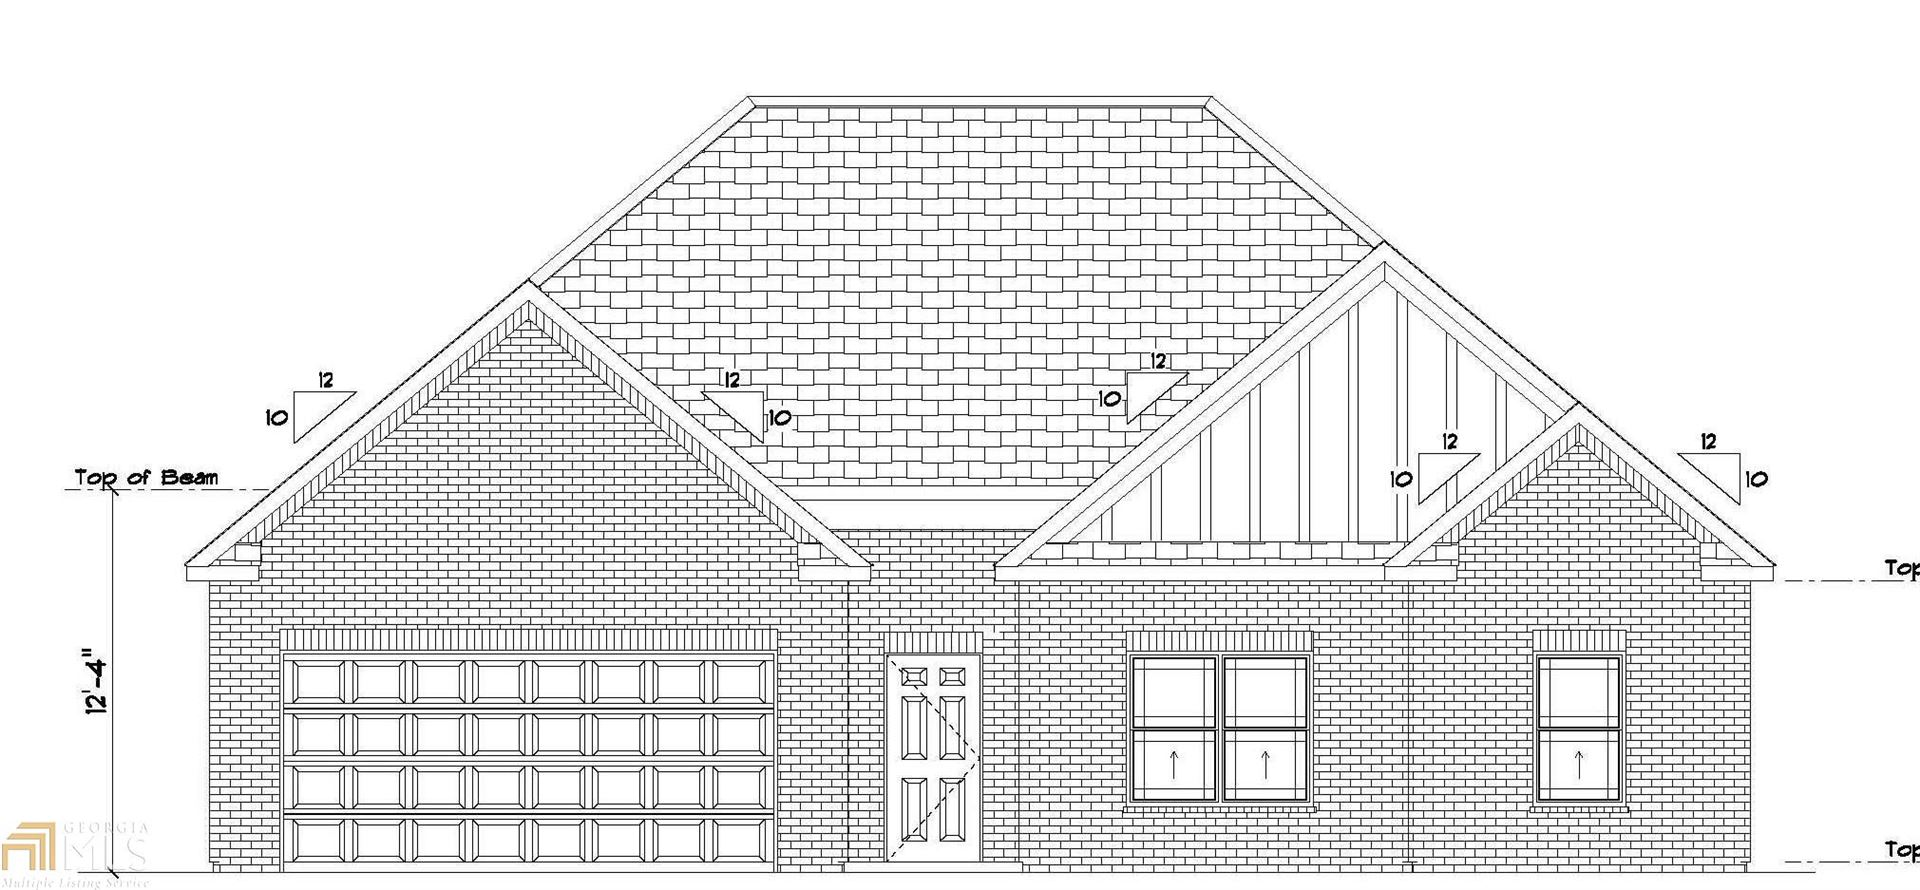 205 Laurel Springs Dr, Macon, GA 31206 - MLS#: 8943398